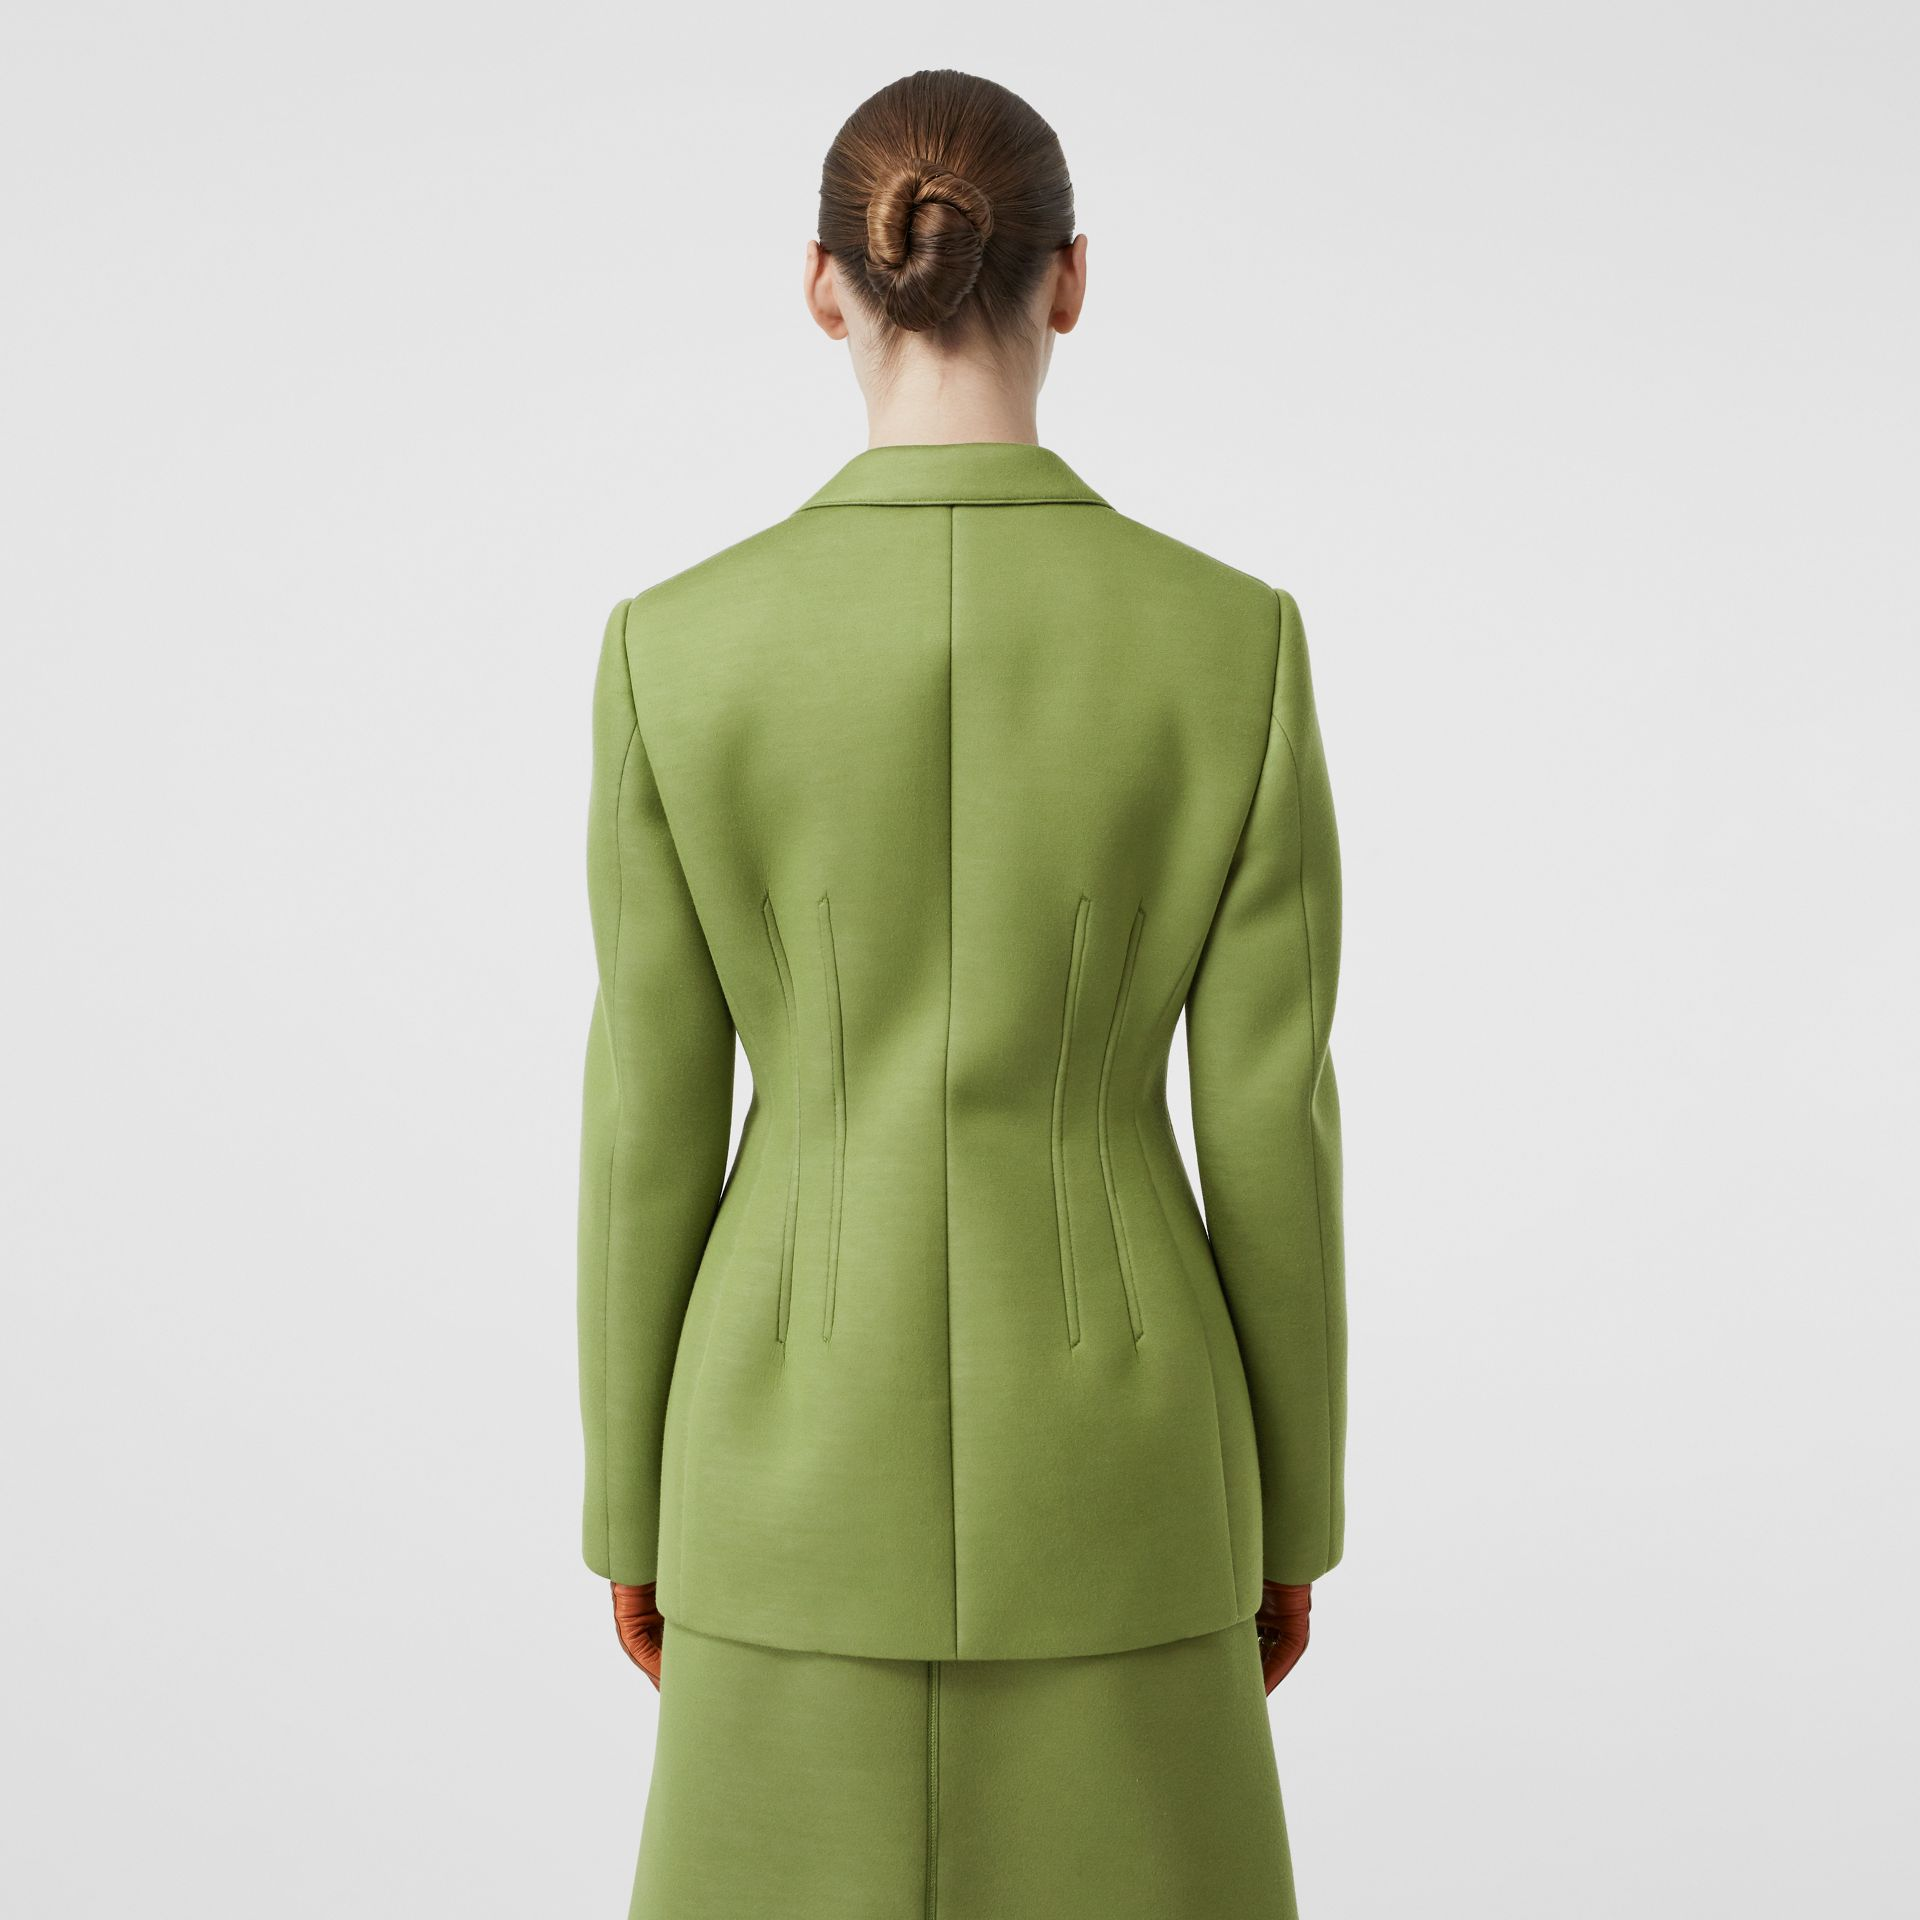 Double-faced Neoprene Tailored Jacket in Cedar Green - Women | Burberry - gallery image 2